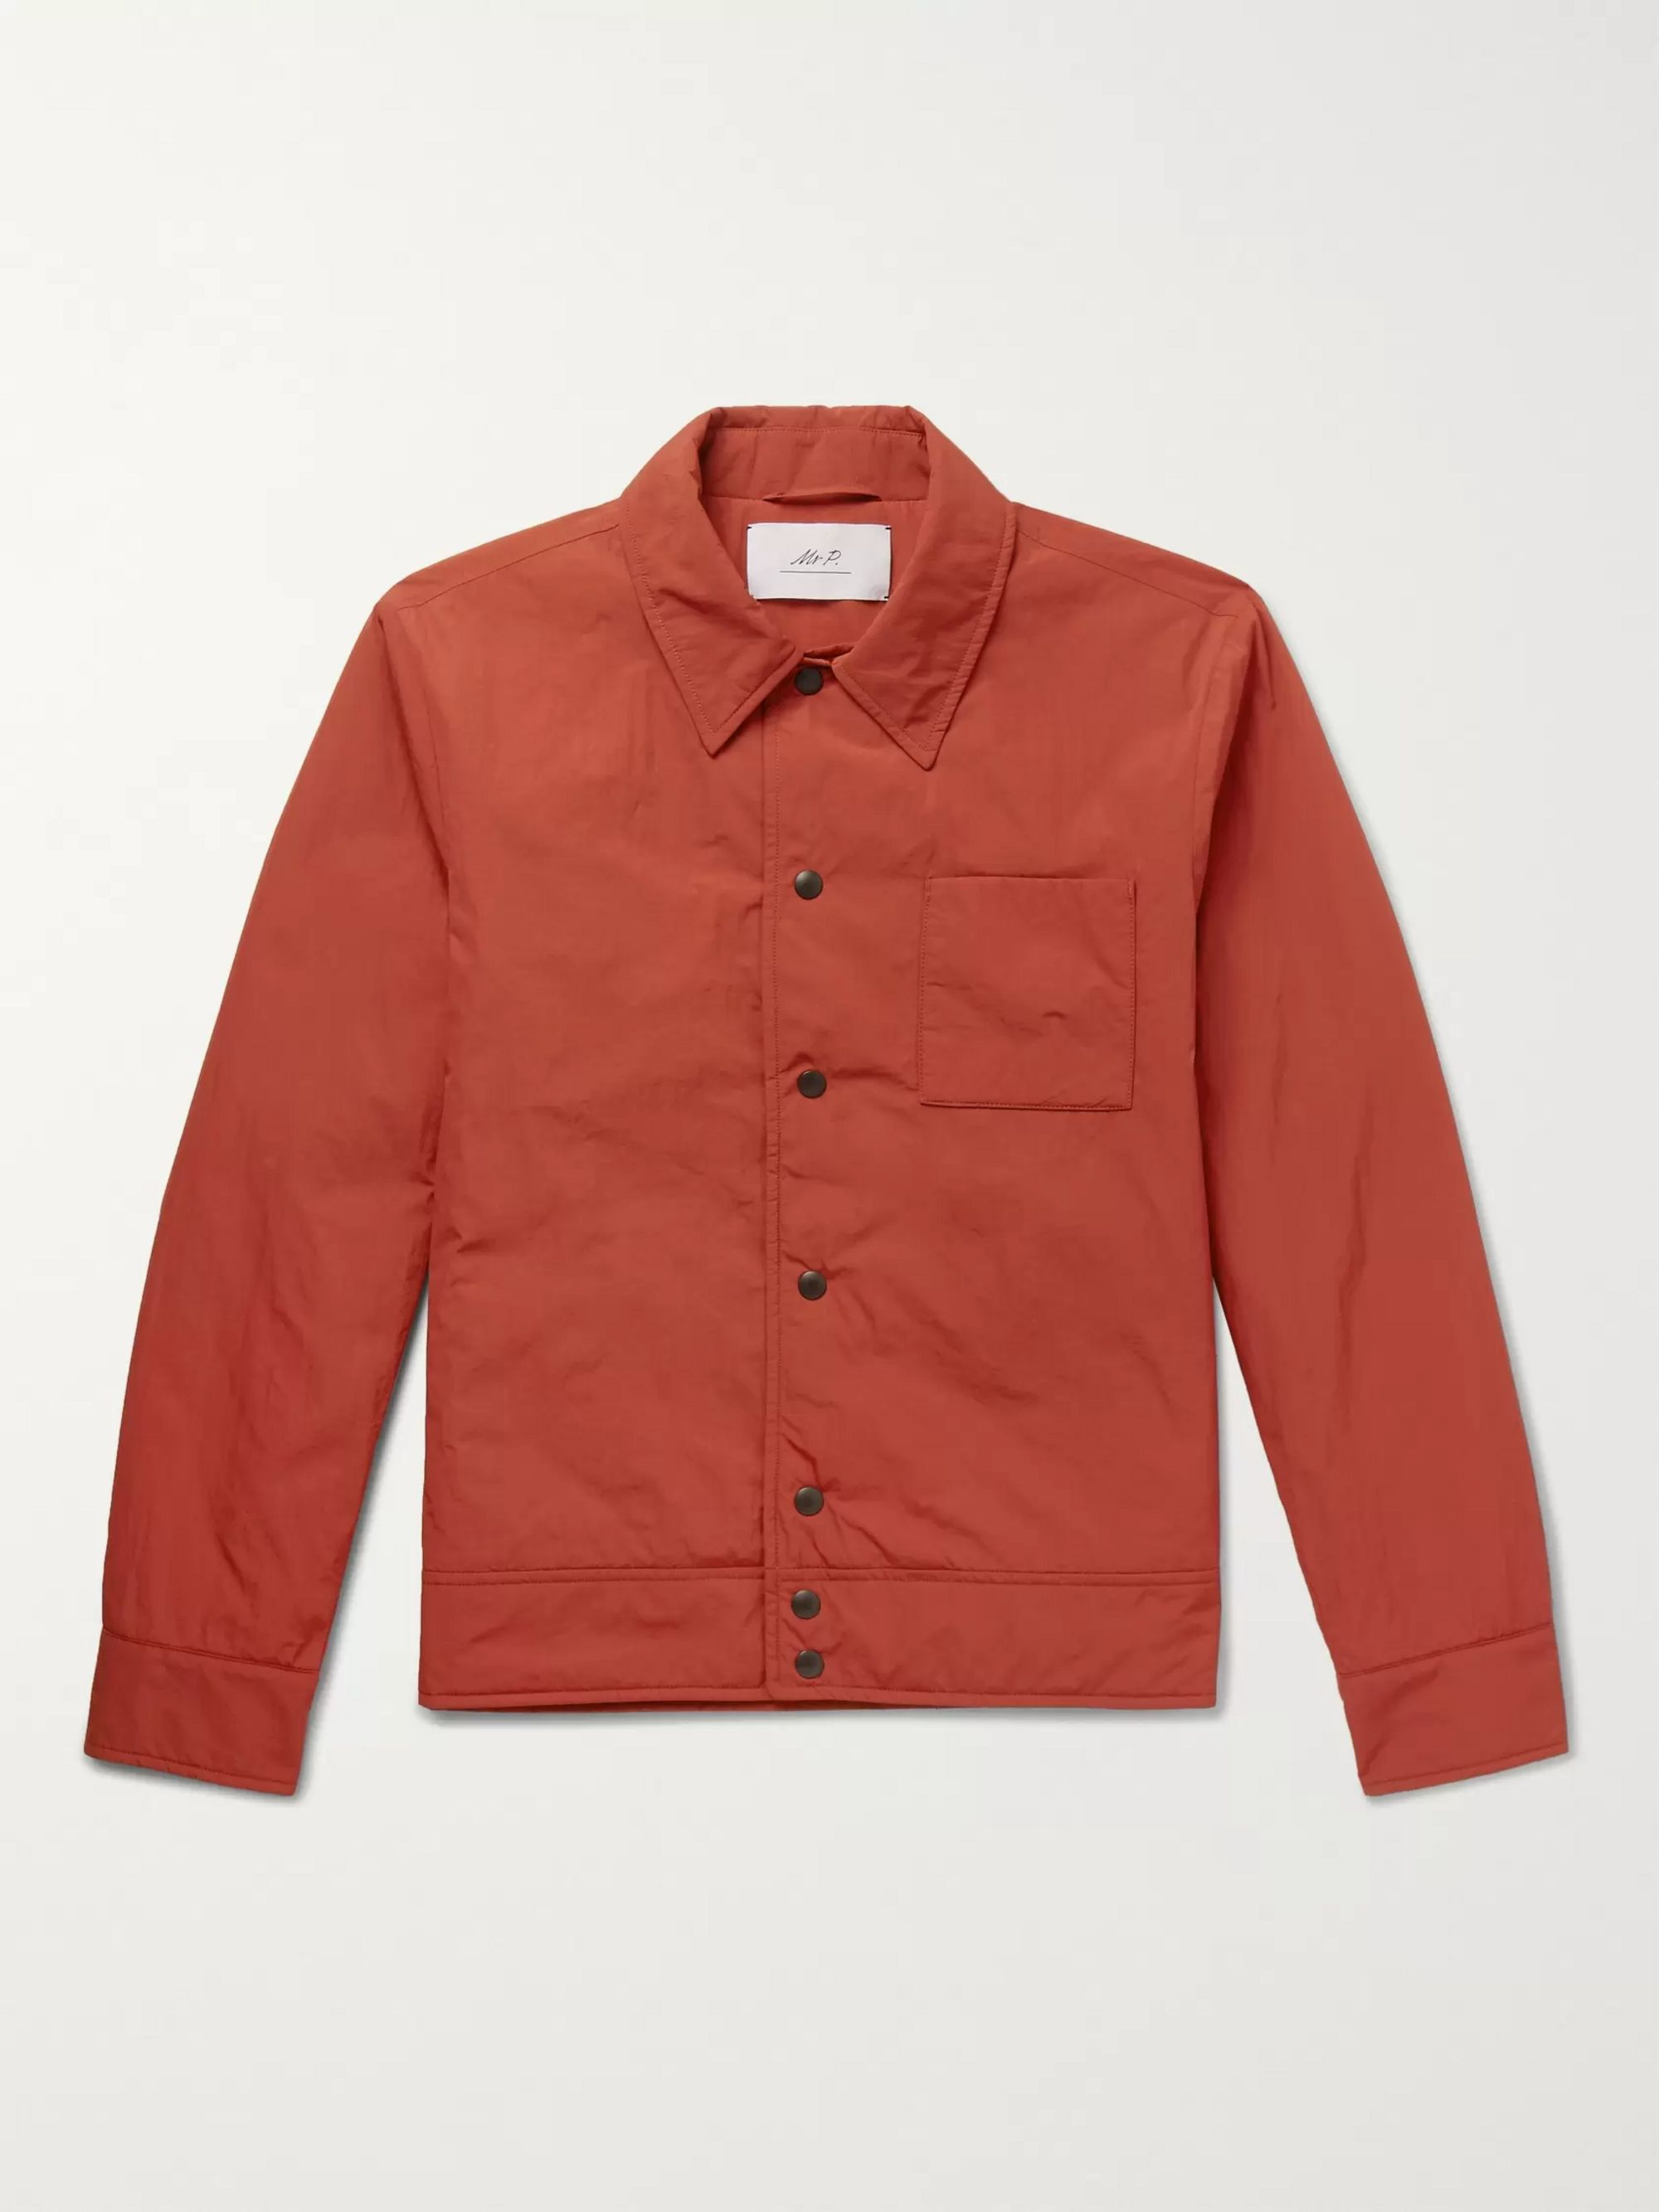 Mr P. Padded Nylon Jacket